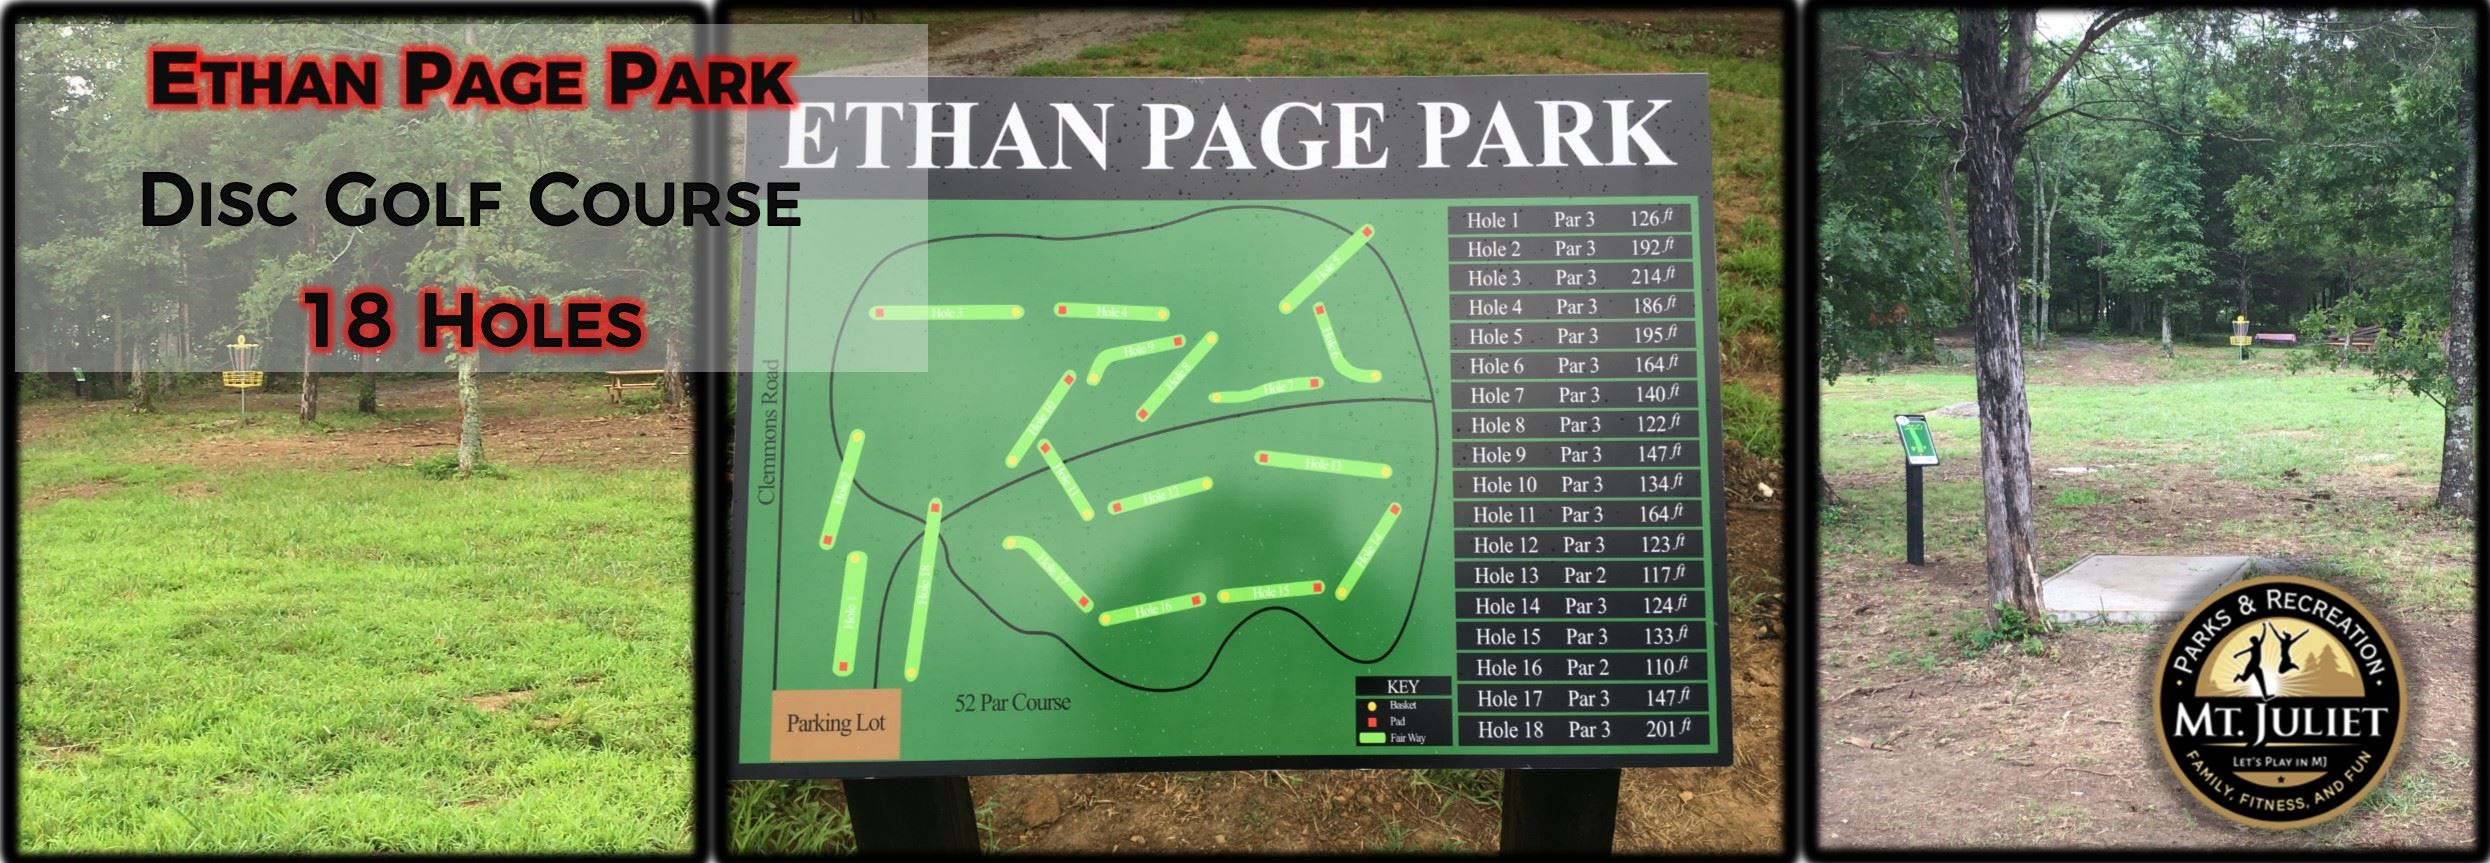 Ethan Page Park Banner